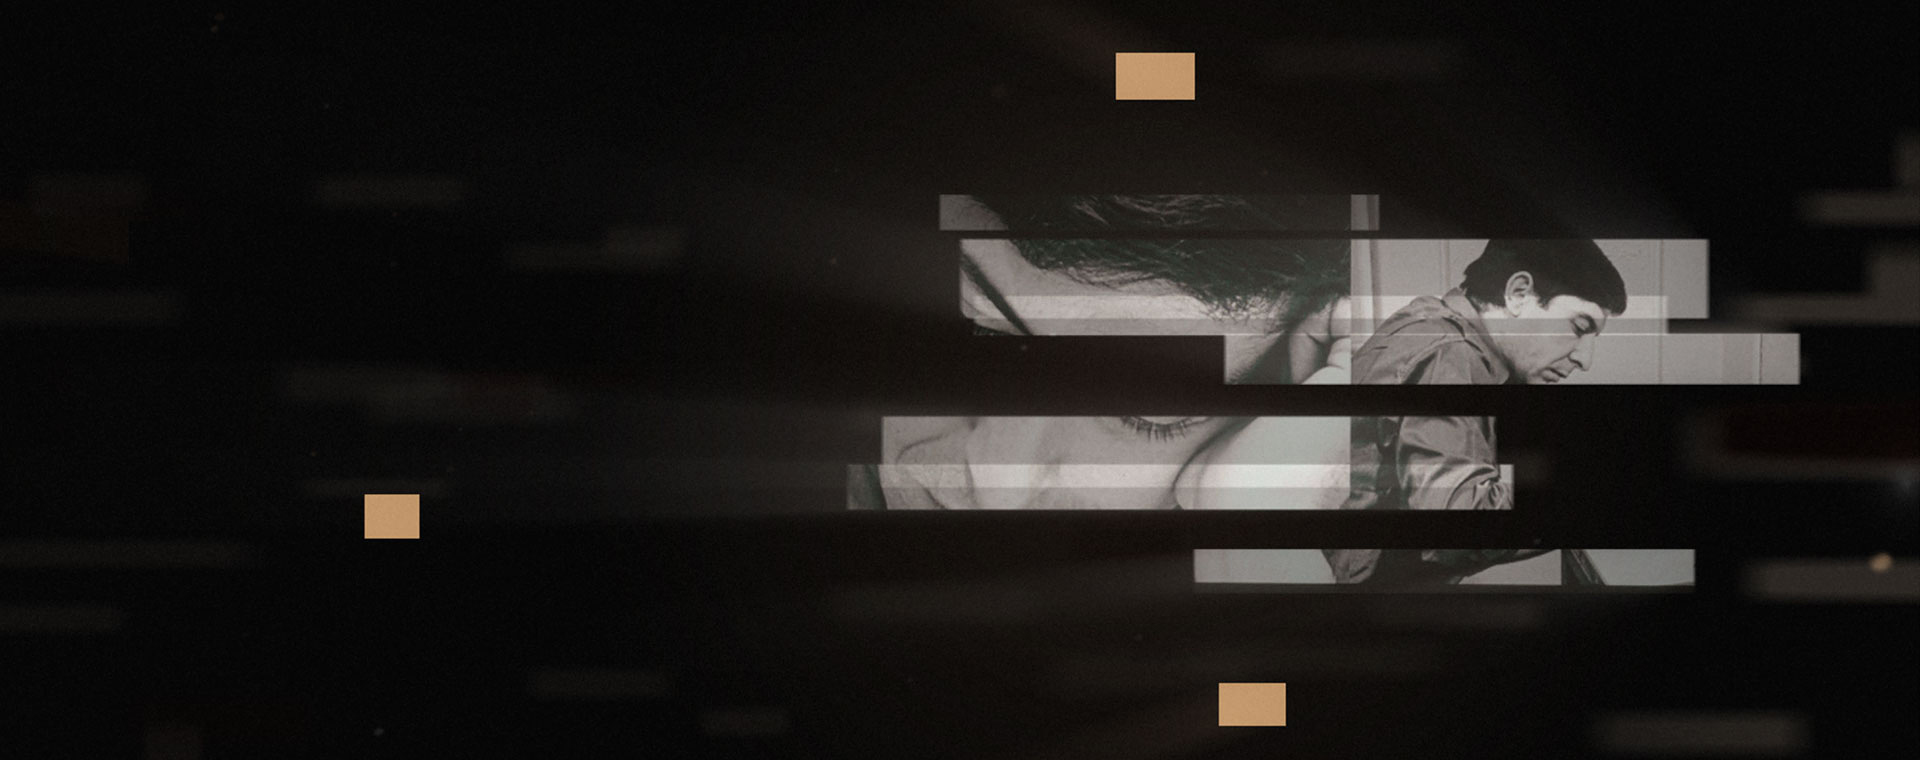 Colour image. On a black background, two superimposed black-and-white images of Leonard Cohen in close-up.